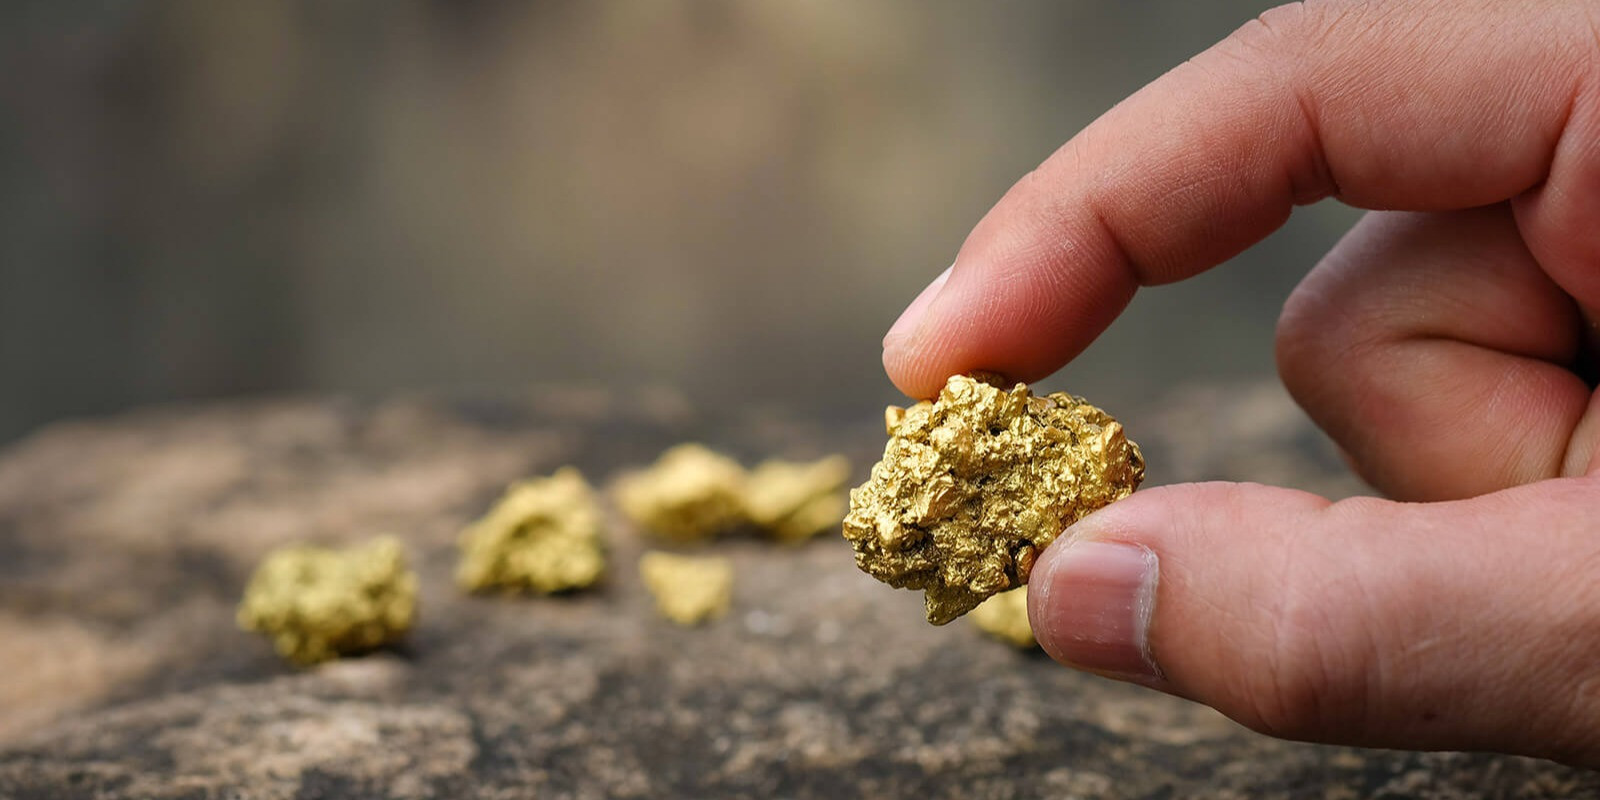 Kingston Resources Ltd - Kingston (KSN:ASX) Highlights Successes in Their Latest Quarterly Cashflow and Activities Report